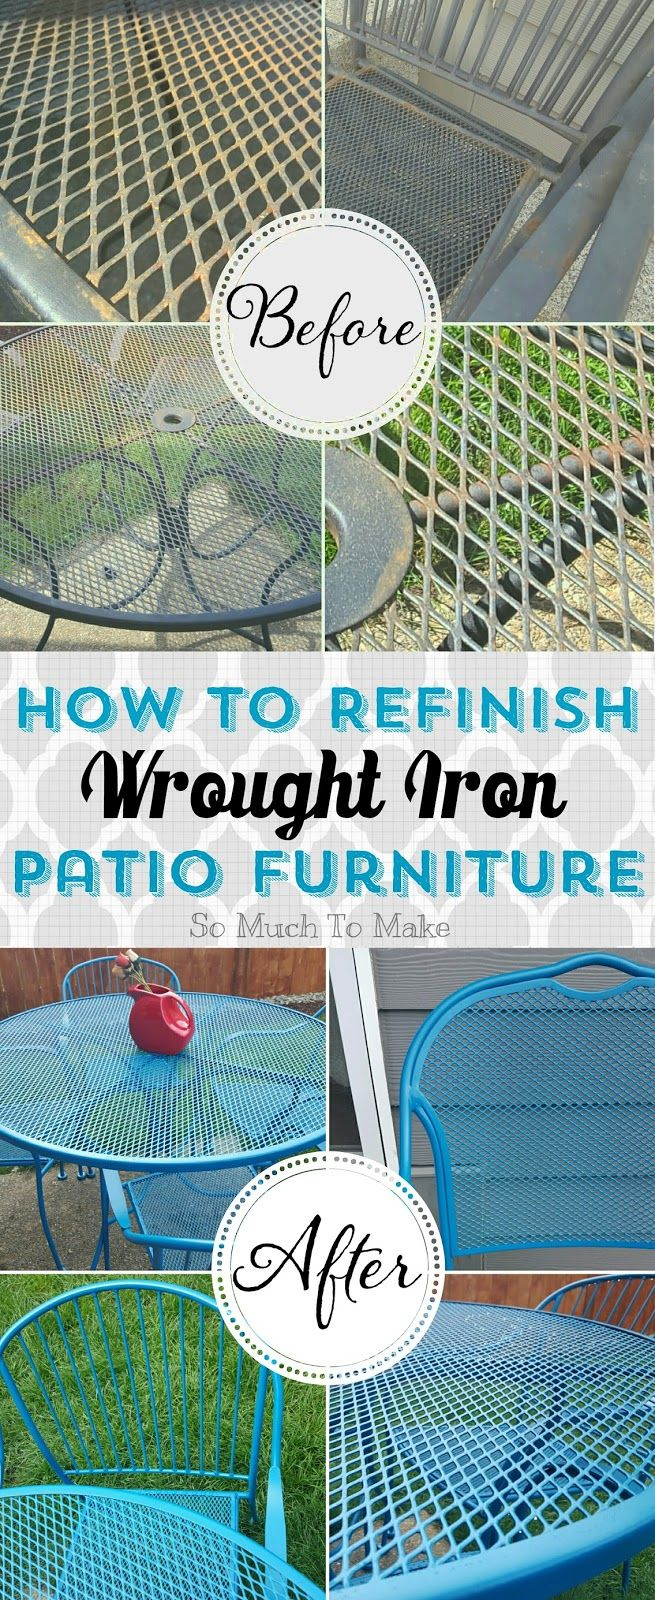 How to Refinish Wrought Iron Patio Furniture; DIY instructions to turn rusty old wrought iron into bright like-new furniture!